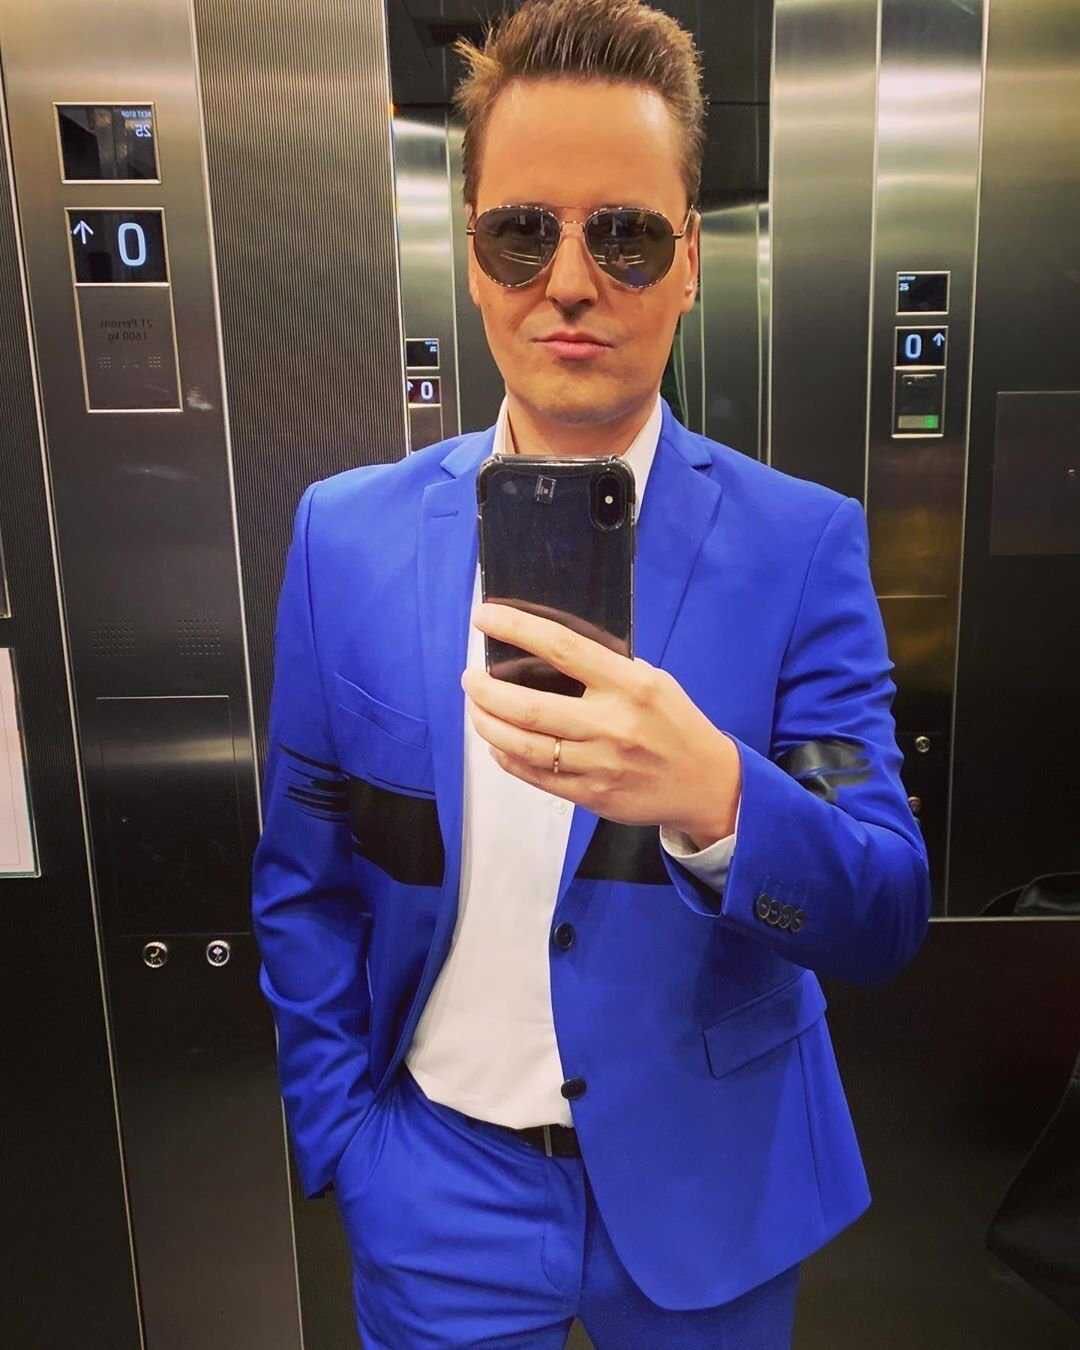 Singer Vitas showed the face of his third child